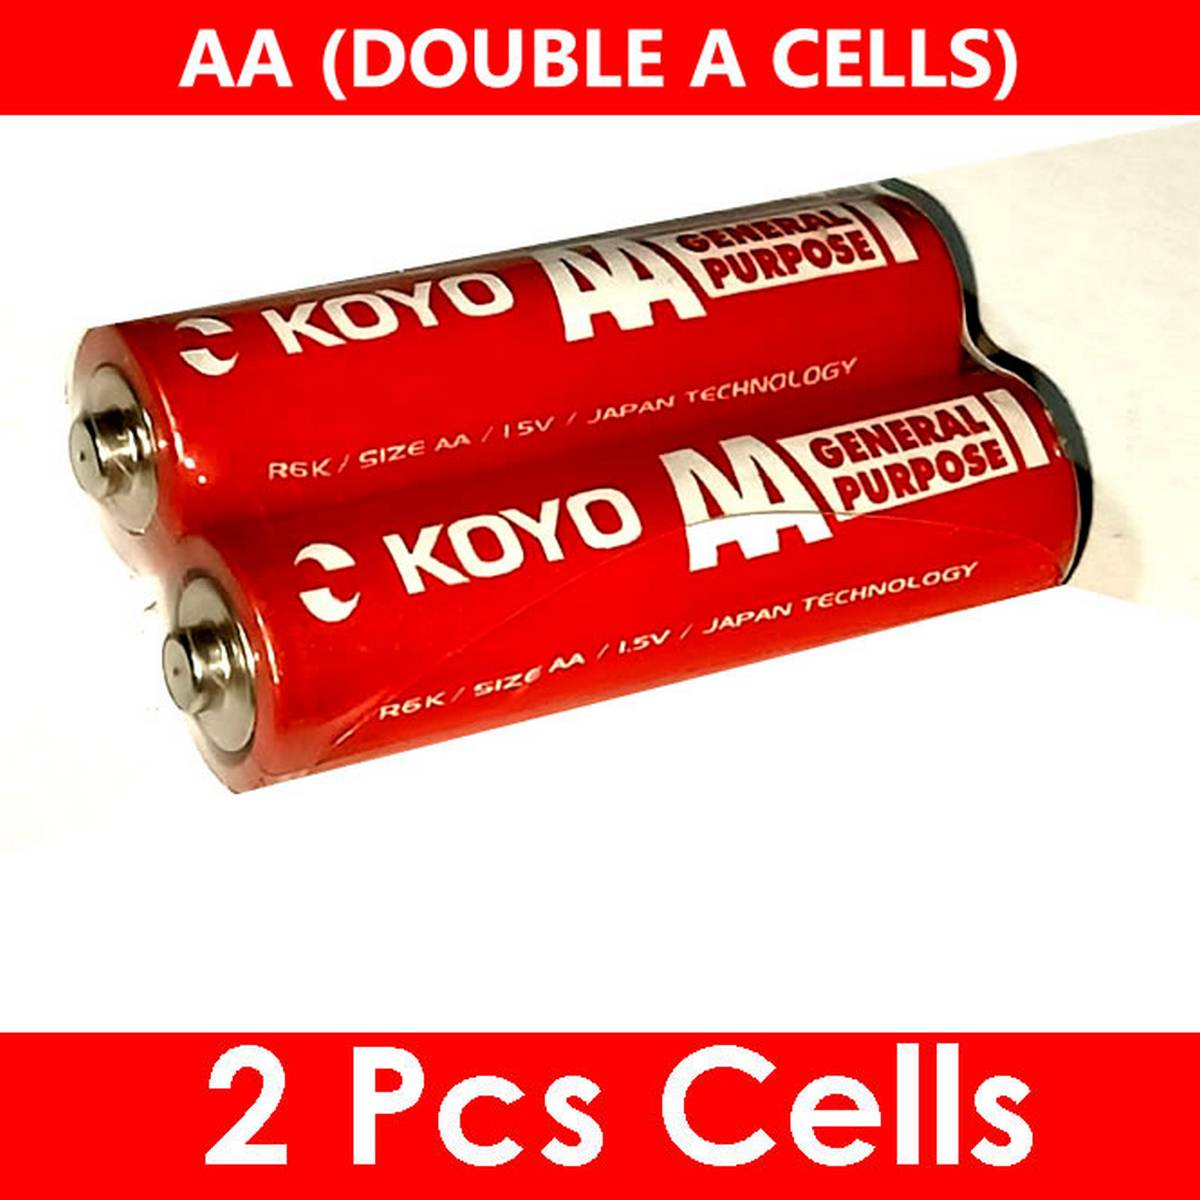 AA Cells High Quality Durable Double A Cell 2pc - for Remotes, Toys, etc.